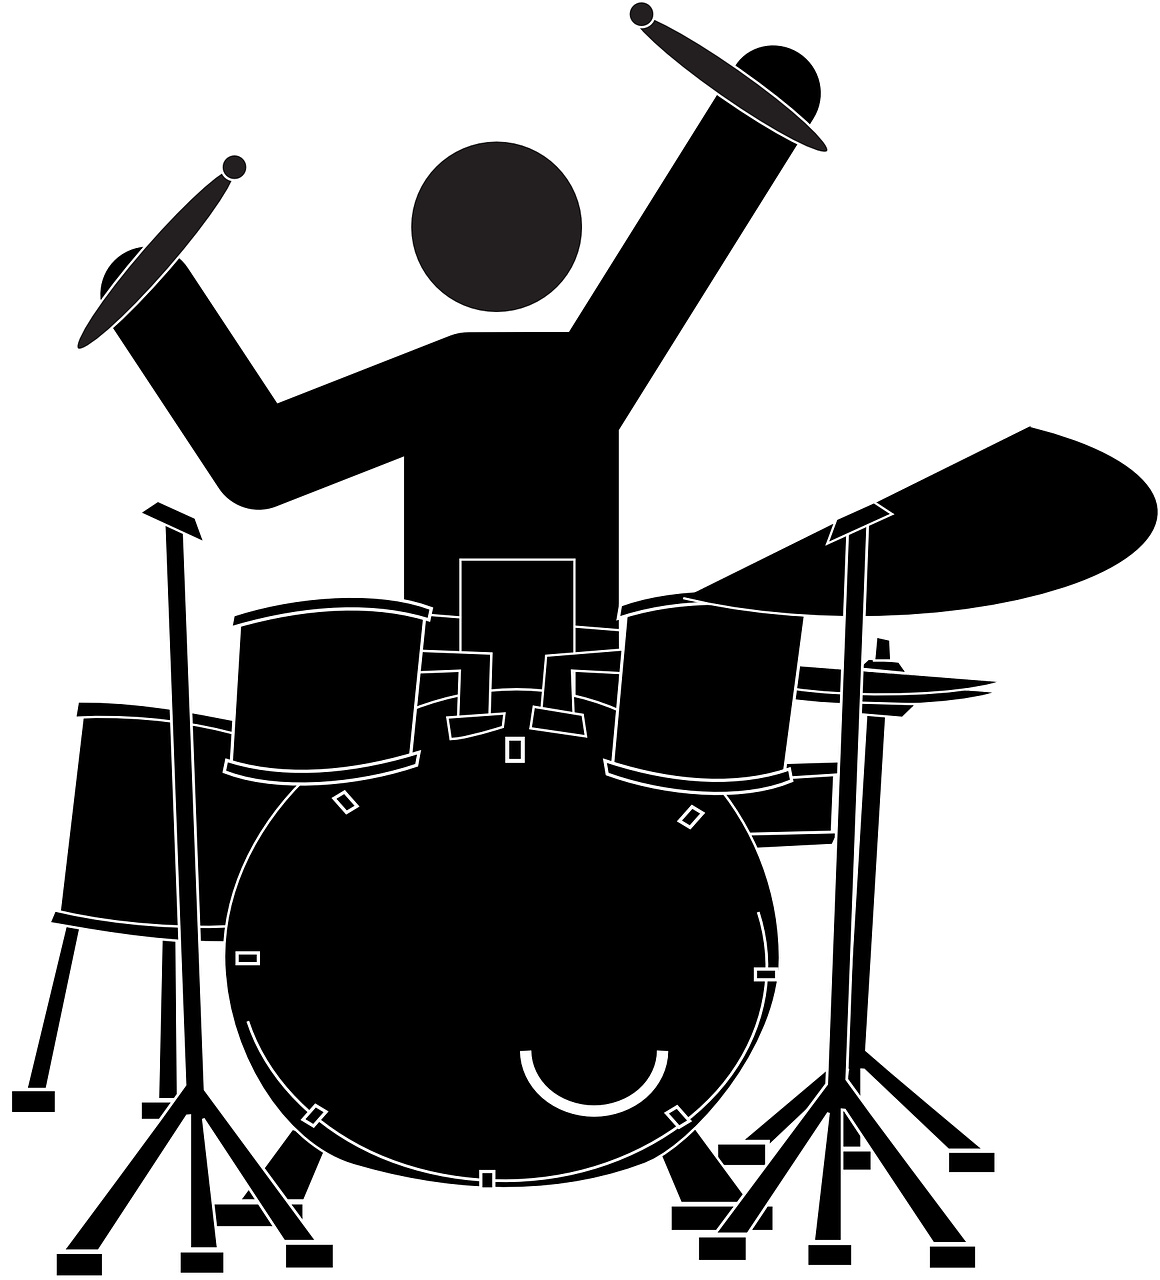 April bonkers away see. Drums clipart silhouette